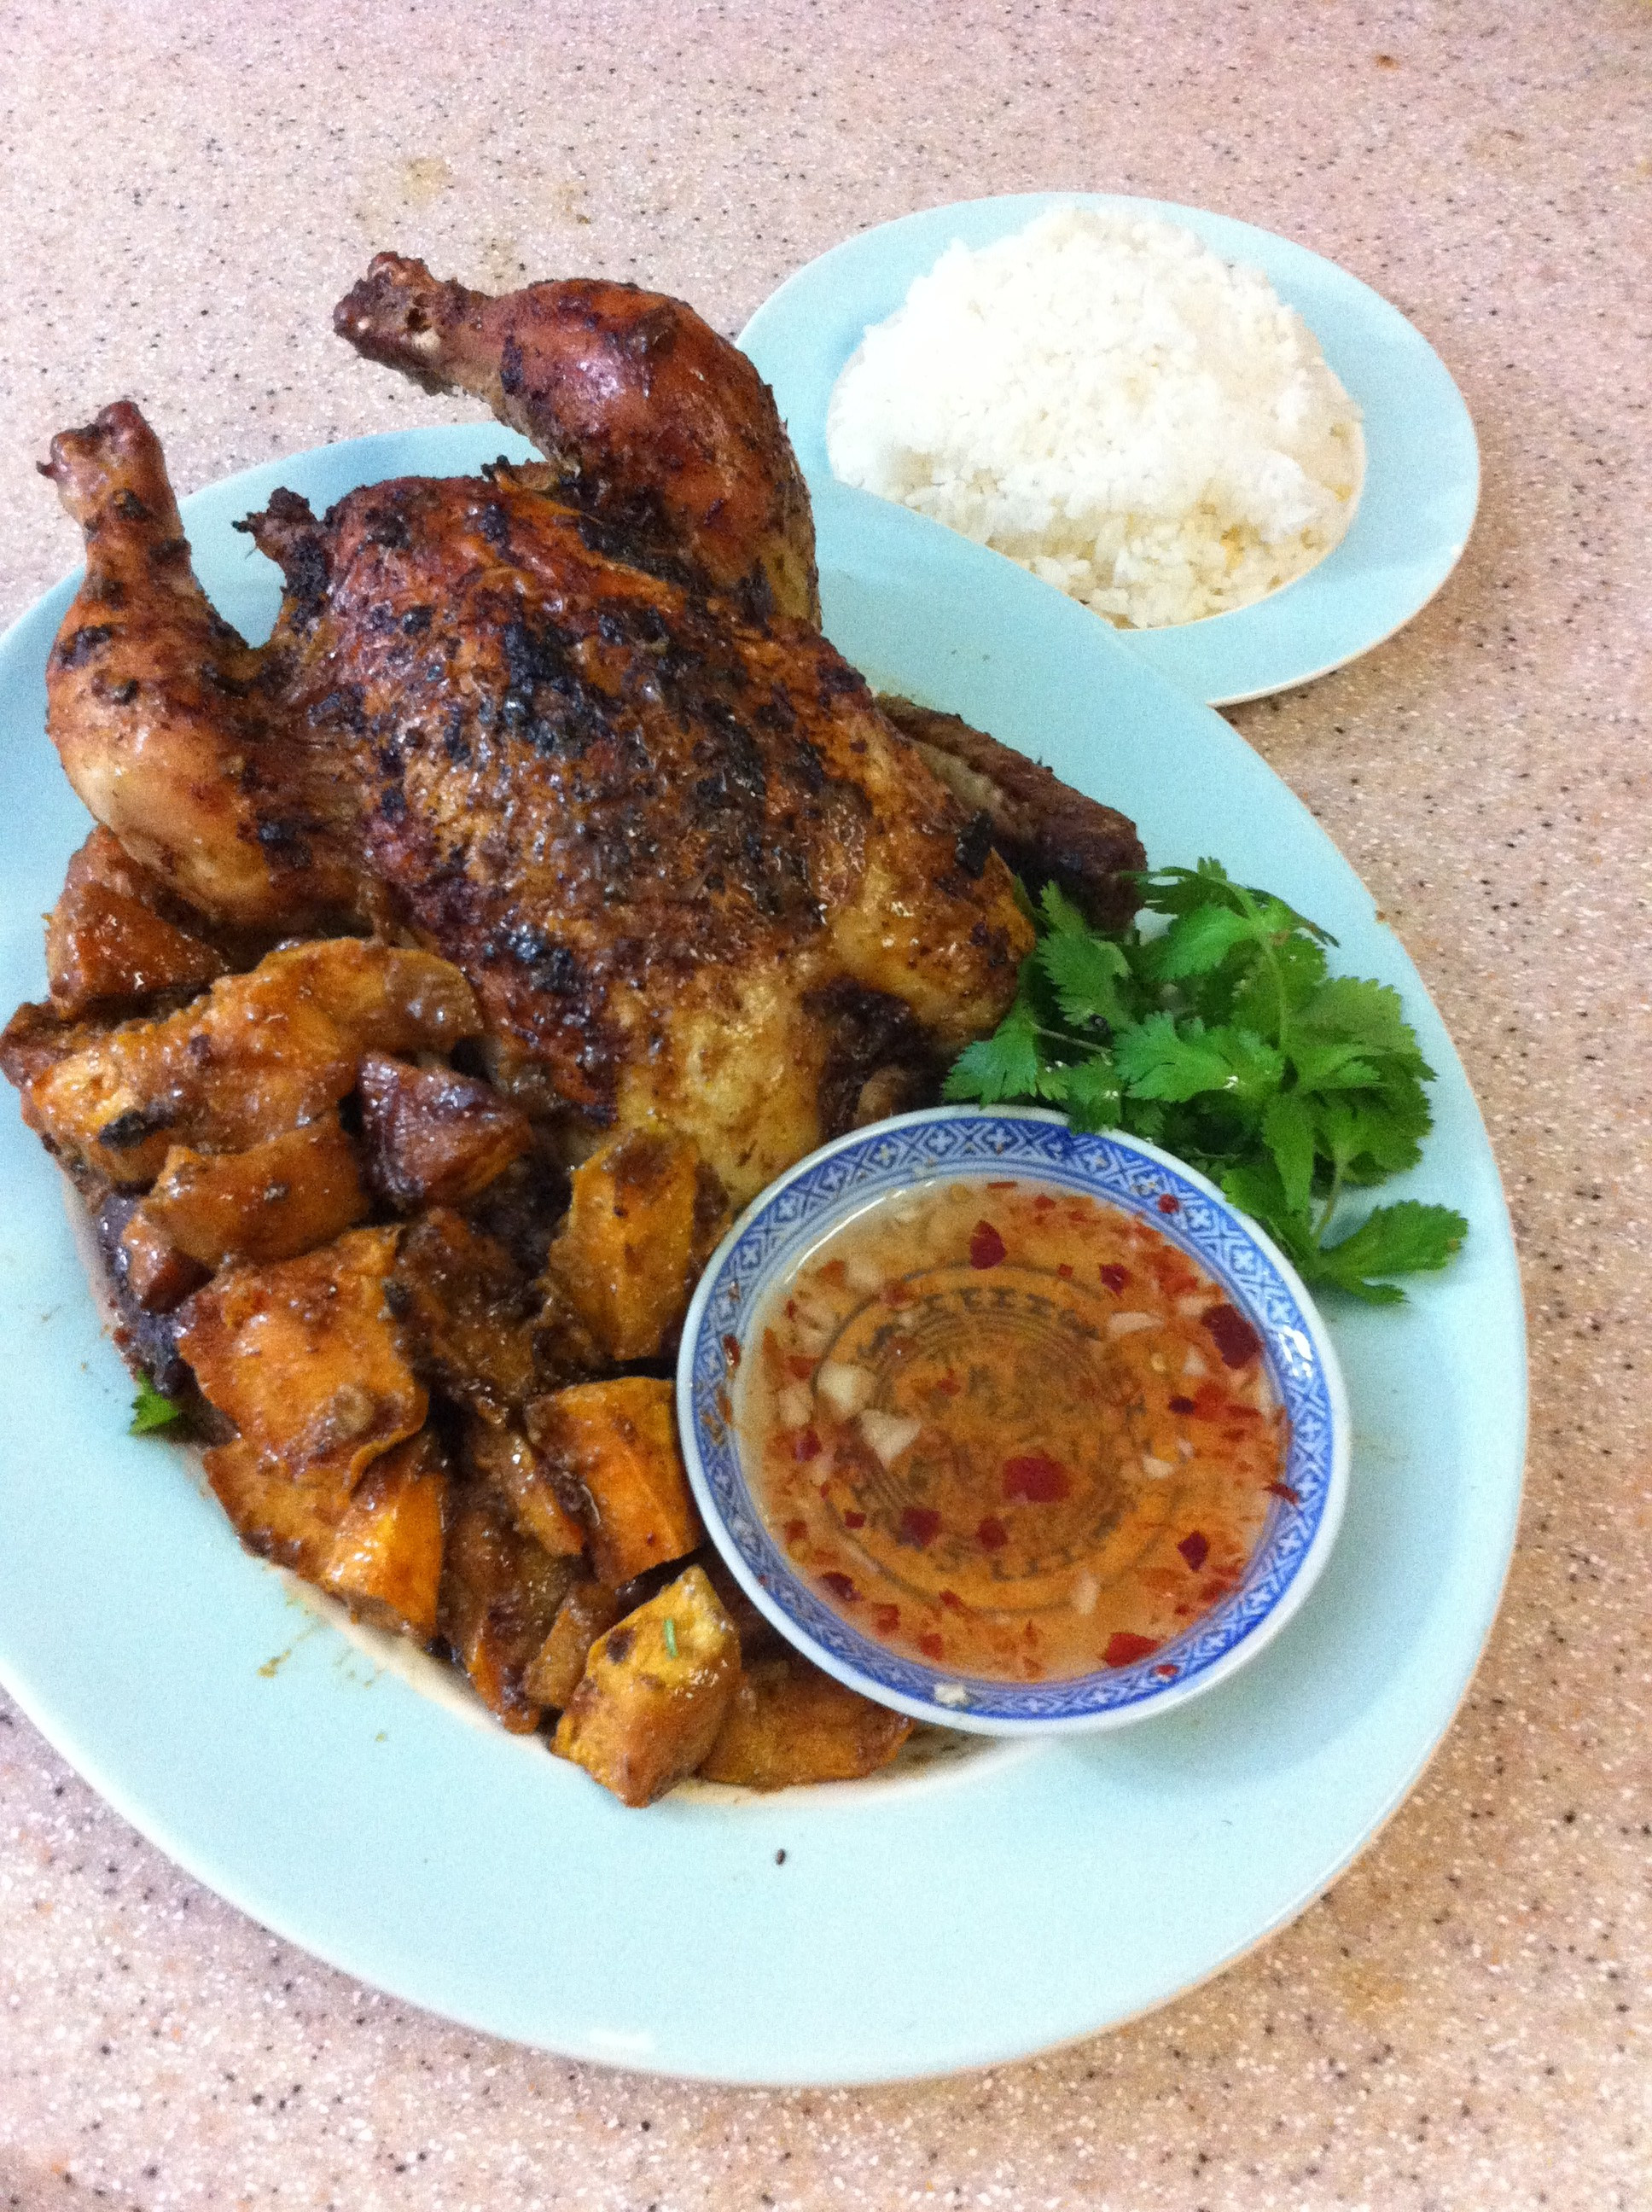 Dinner's ready! Roast chicken with Thai flavors, served with pan-roasted sweet potatoes, sweet hot garlic sauce and jasmine rice.